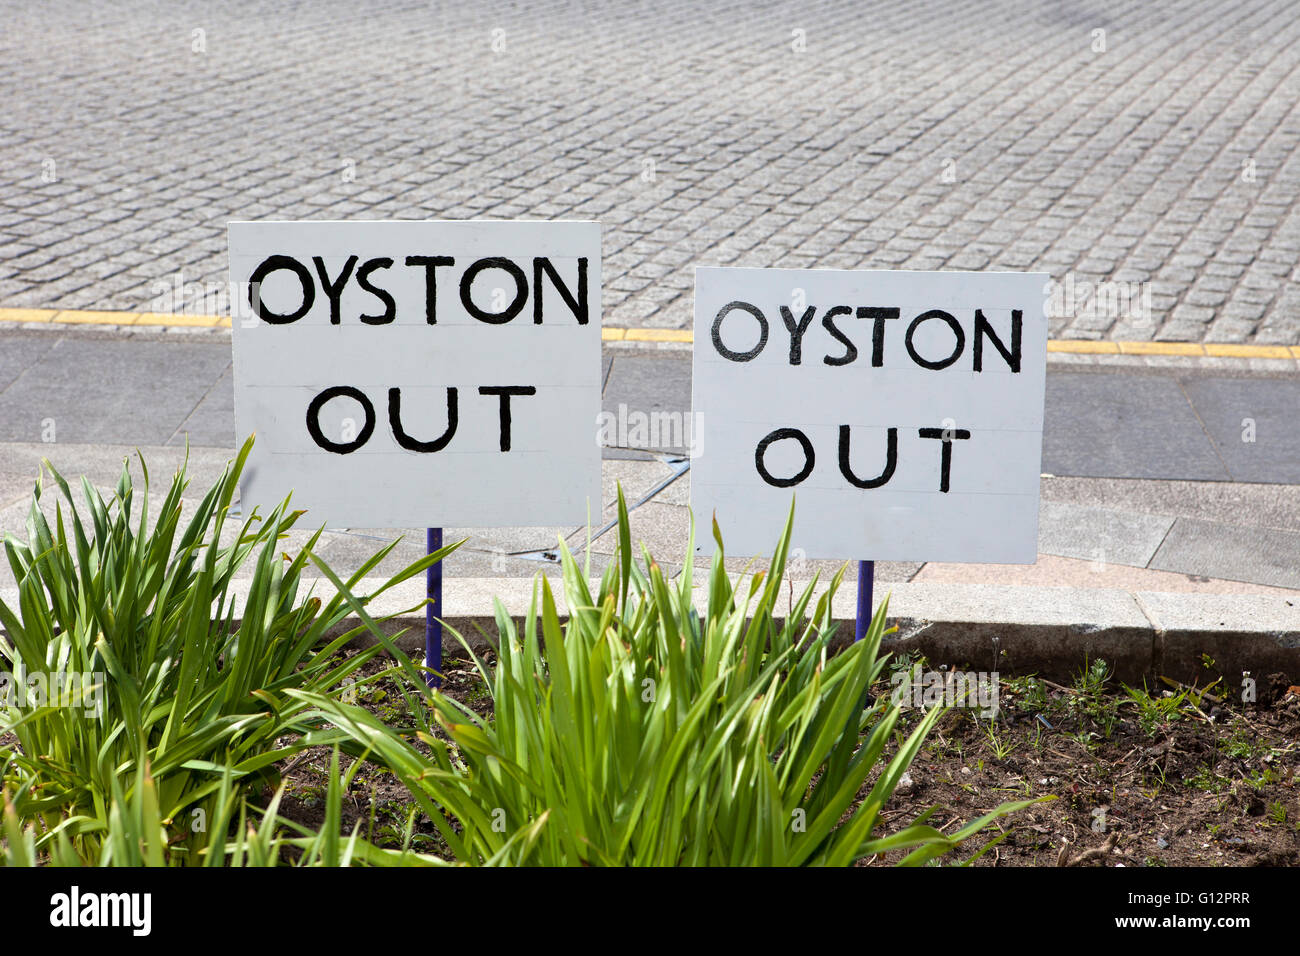 Oyston Out Signs, at Blackpool Football club, Lancashire, UK - Stock Image